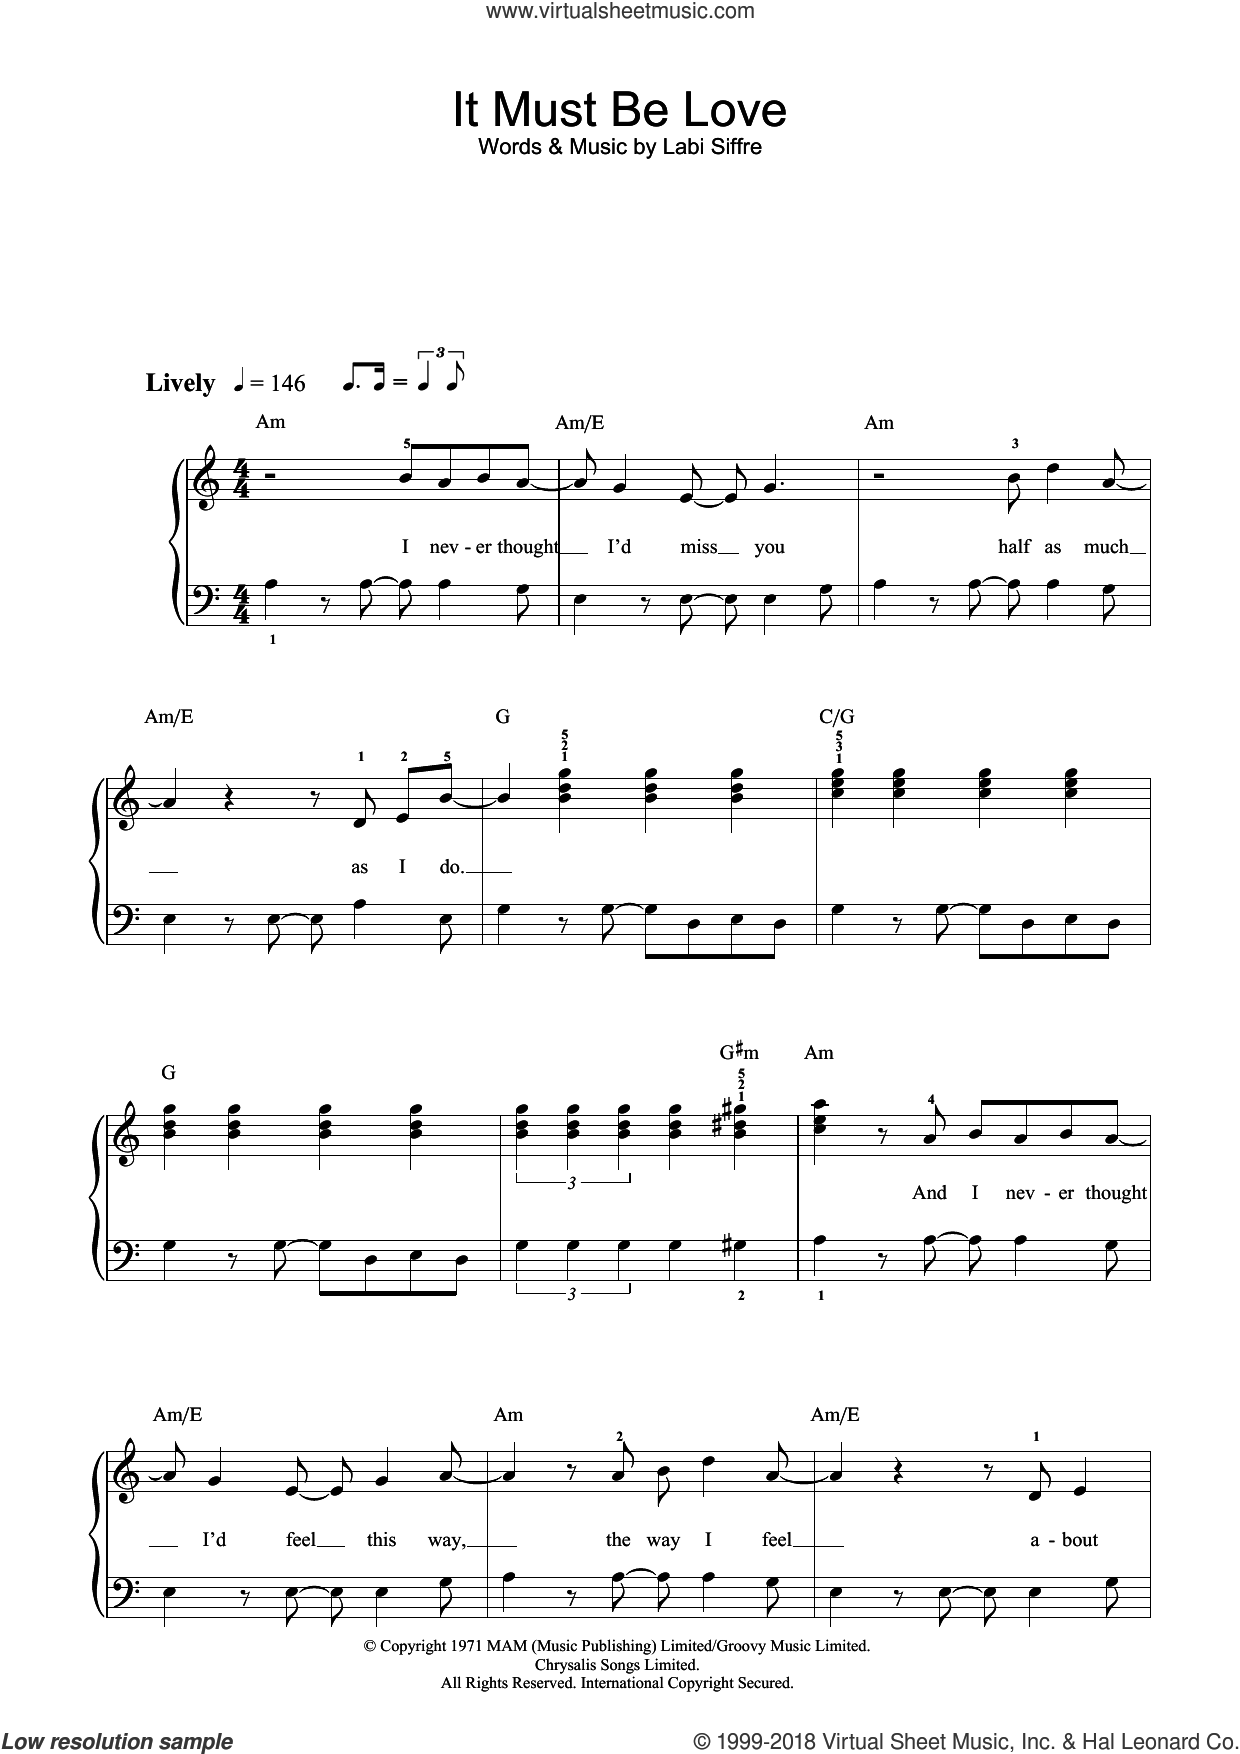 It Must Be Love sheet music for voice, piano or guitar by Labi Siffre and Madness. Score Image Preview.